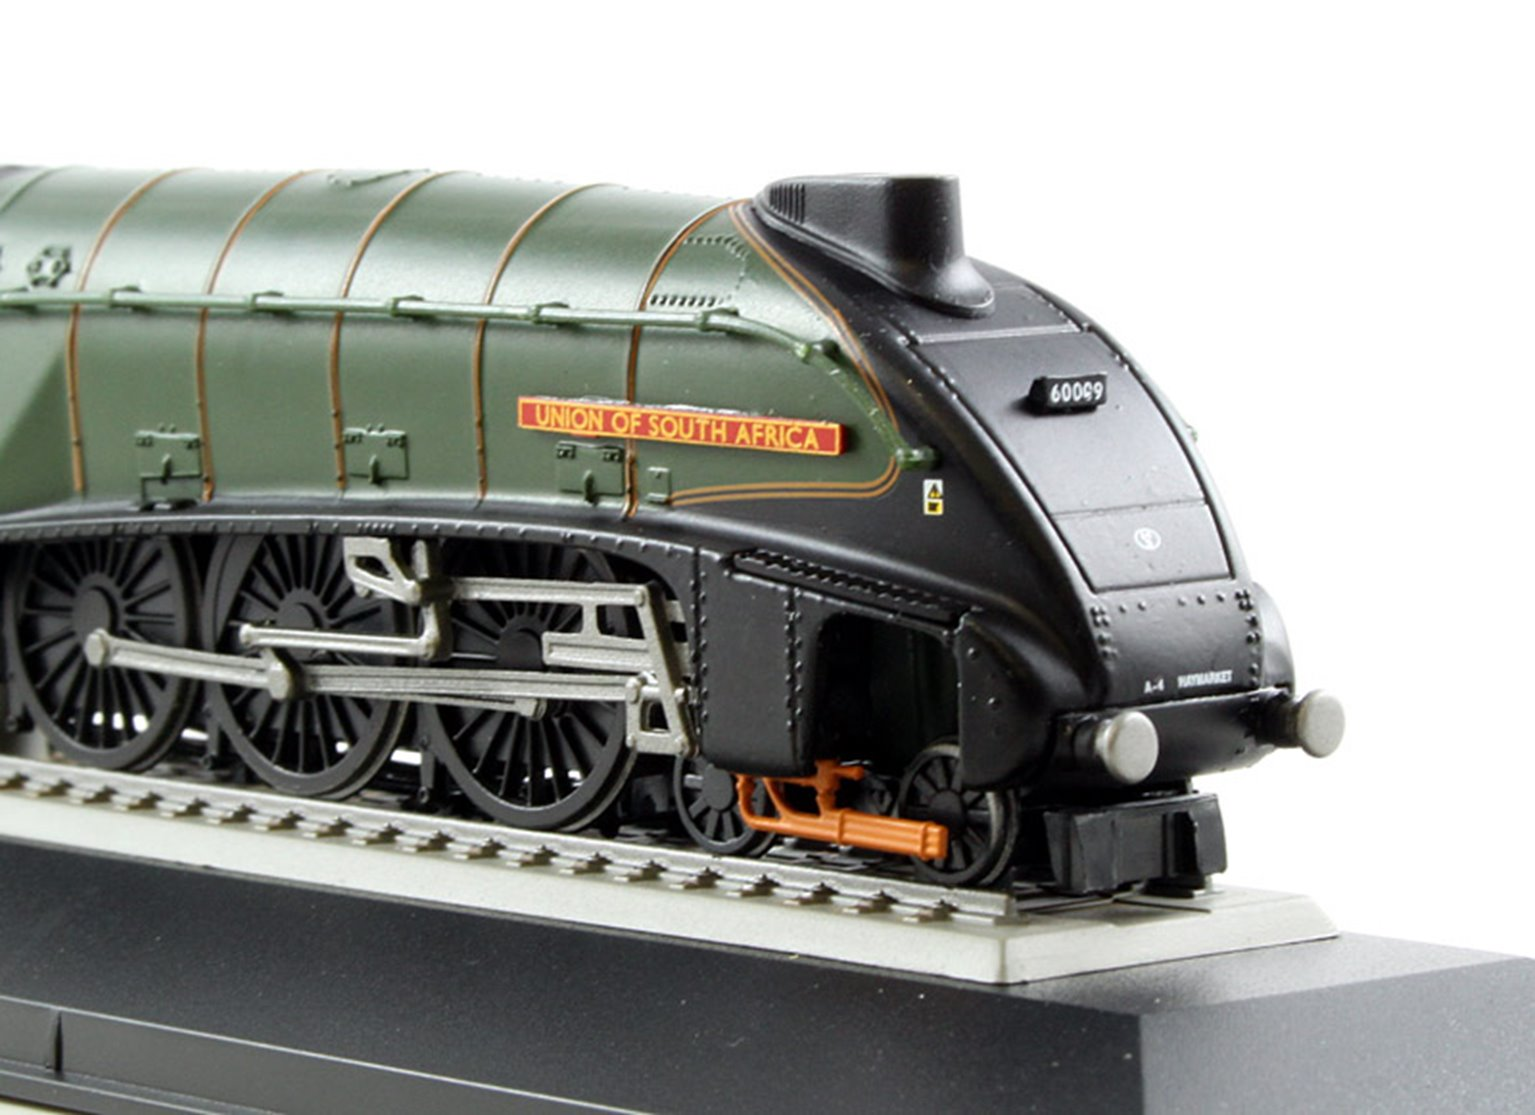 BR 4-6-2 A4 Class 'Union of South Africa' Locomotive 60009 -A4 Gathering 2013 (Static Diecast Model)